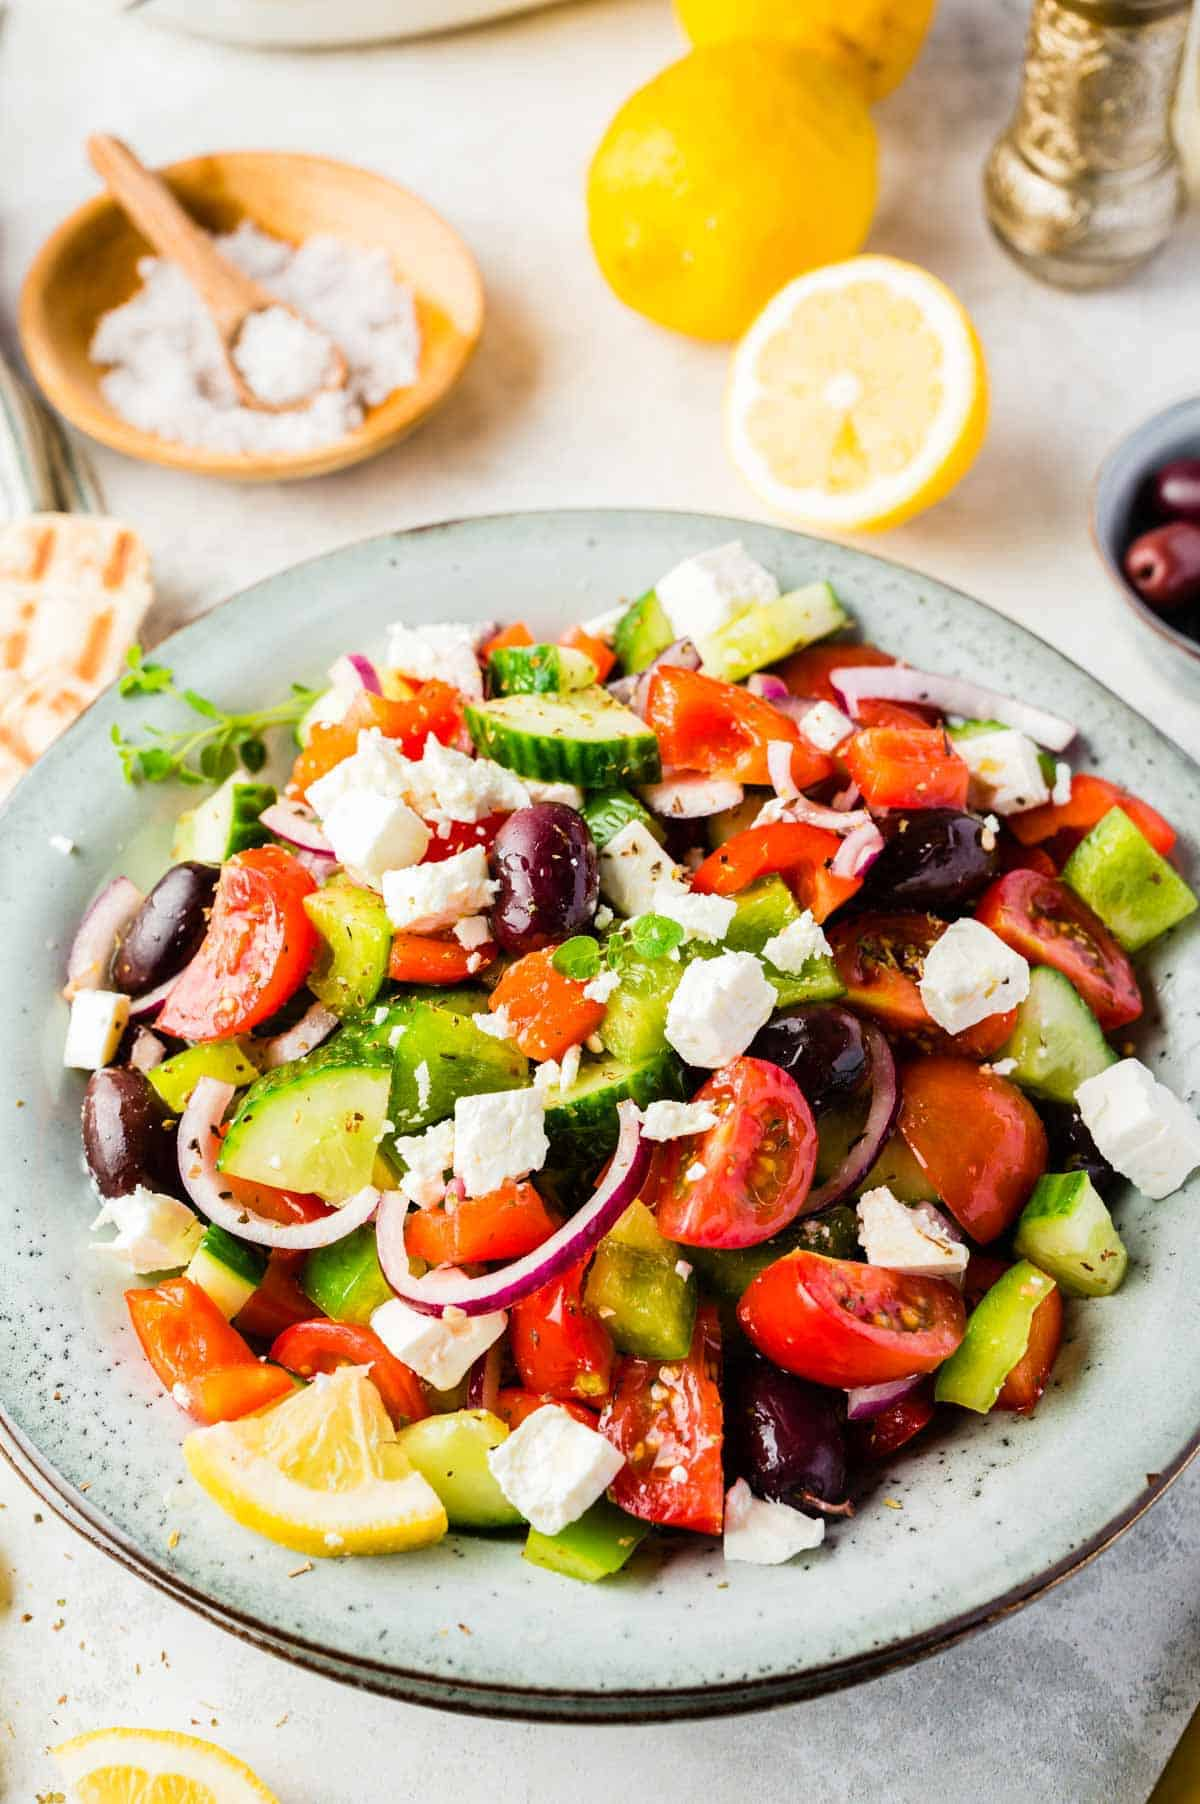 A Close-Up Shot of a Greek Salad Topped with Chunks of Feta Cheese